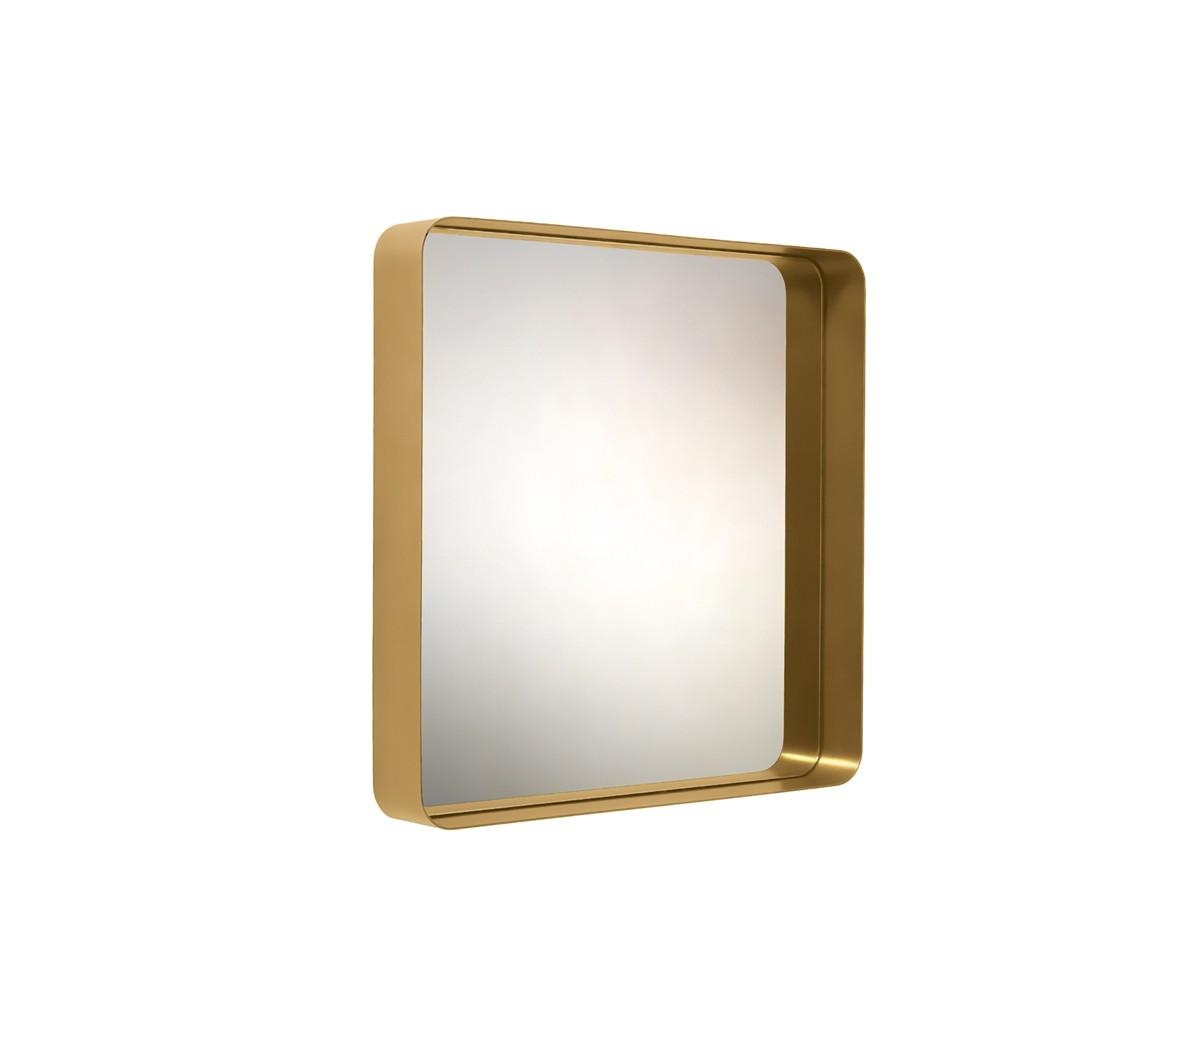 Cypris Mirrorclassicon – Luxury Interior Design Online Shop Intended For Mirror Shop Online (Image 7 of 20)